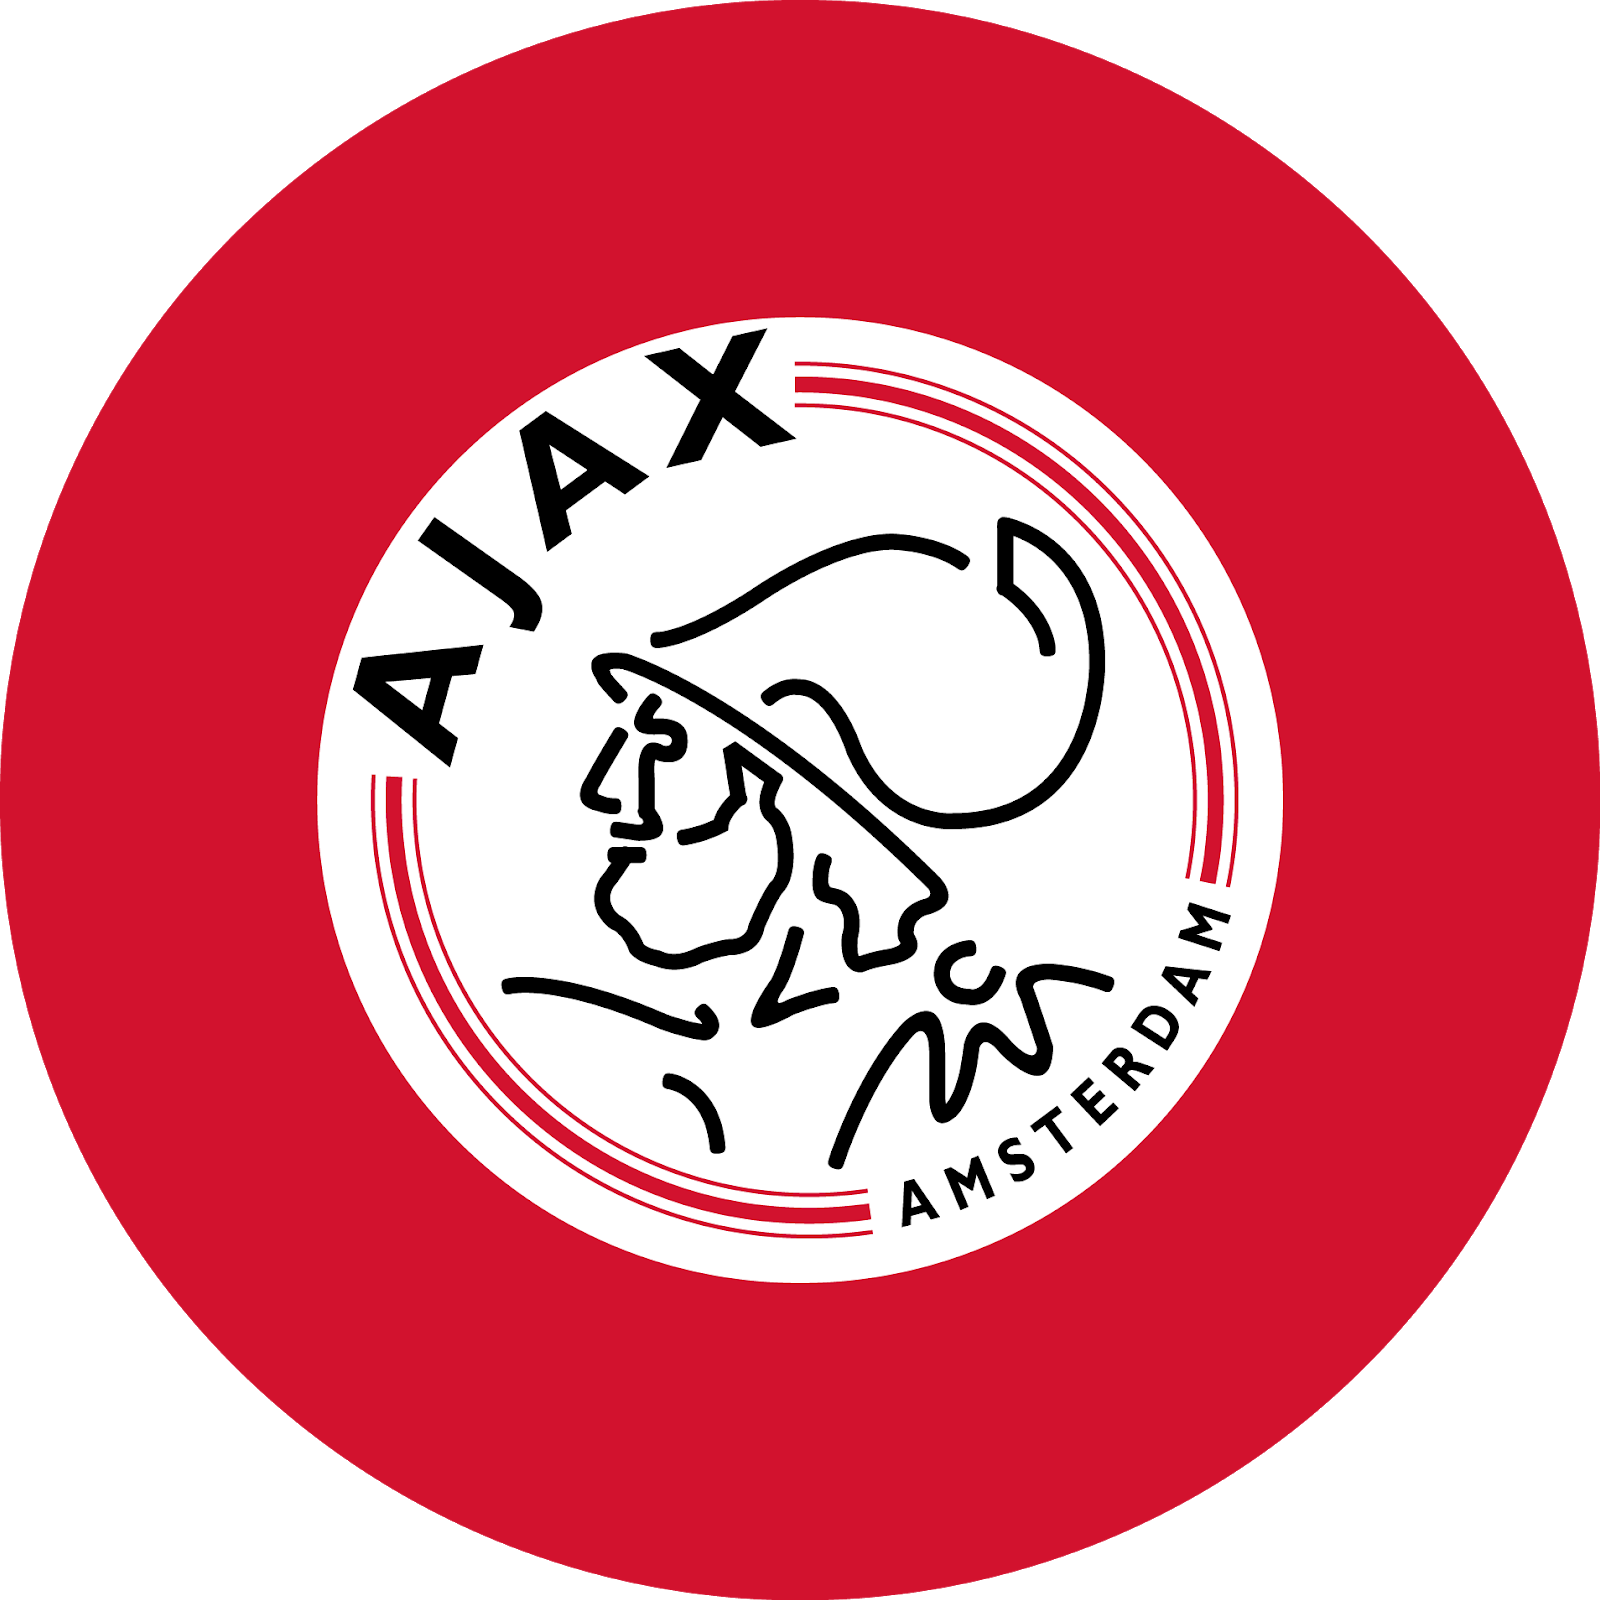 download icon ajax amsterdam svg eps png psd ai vector.